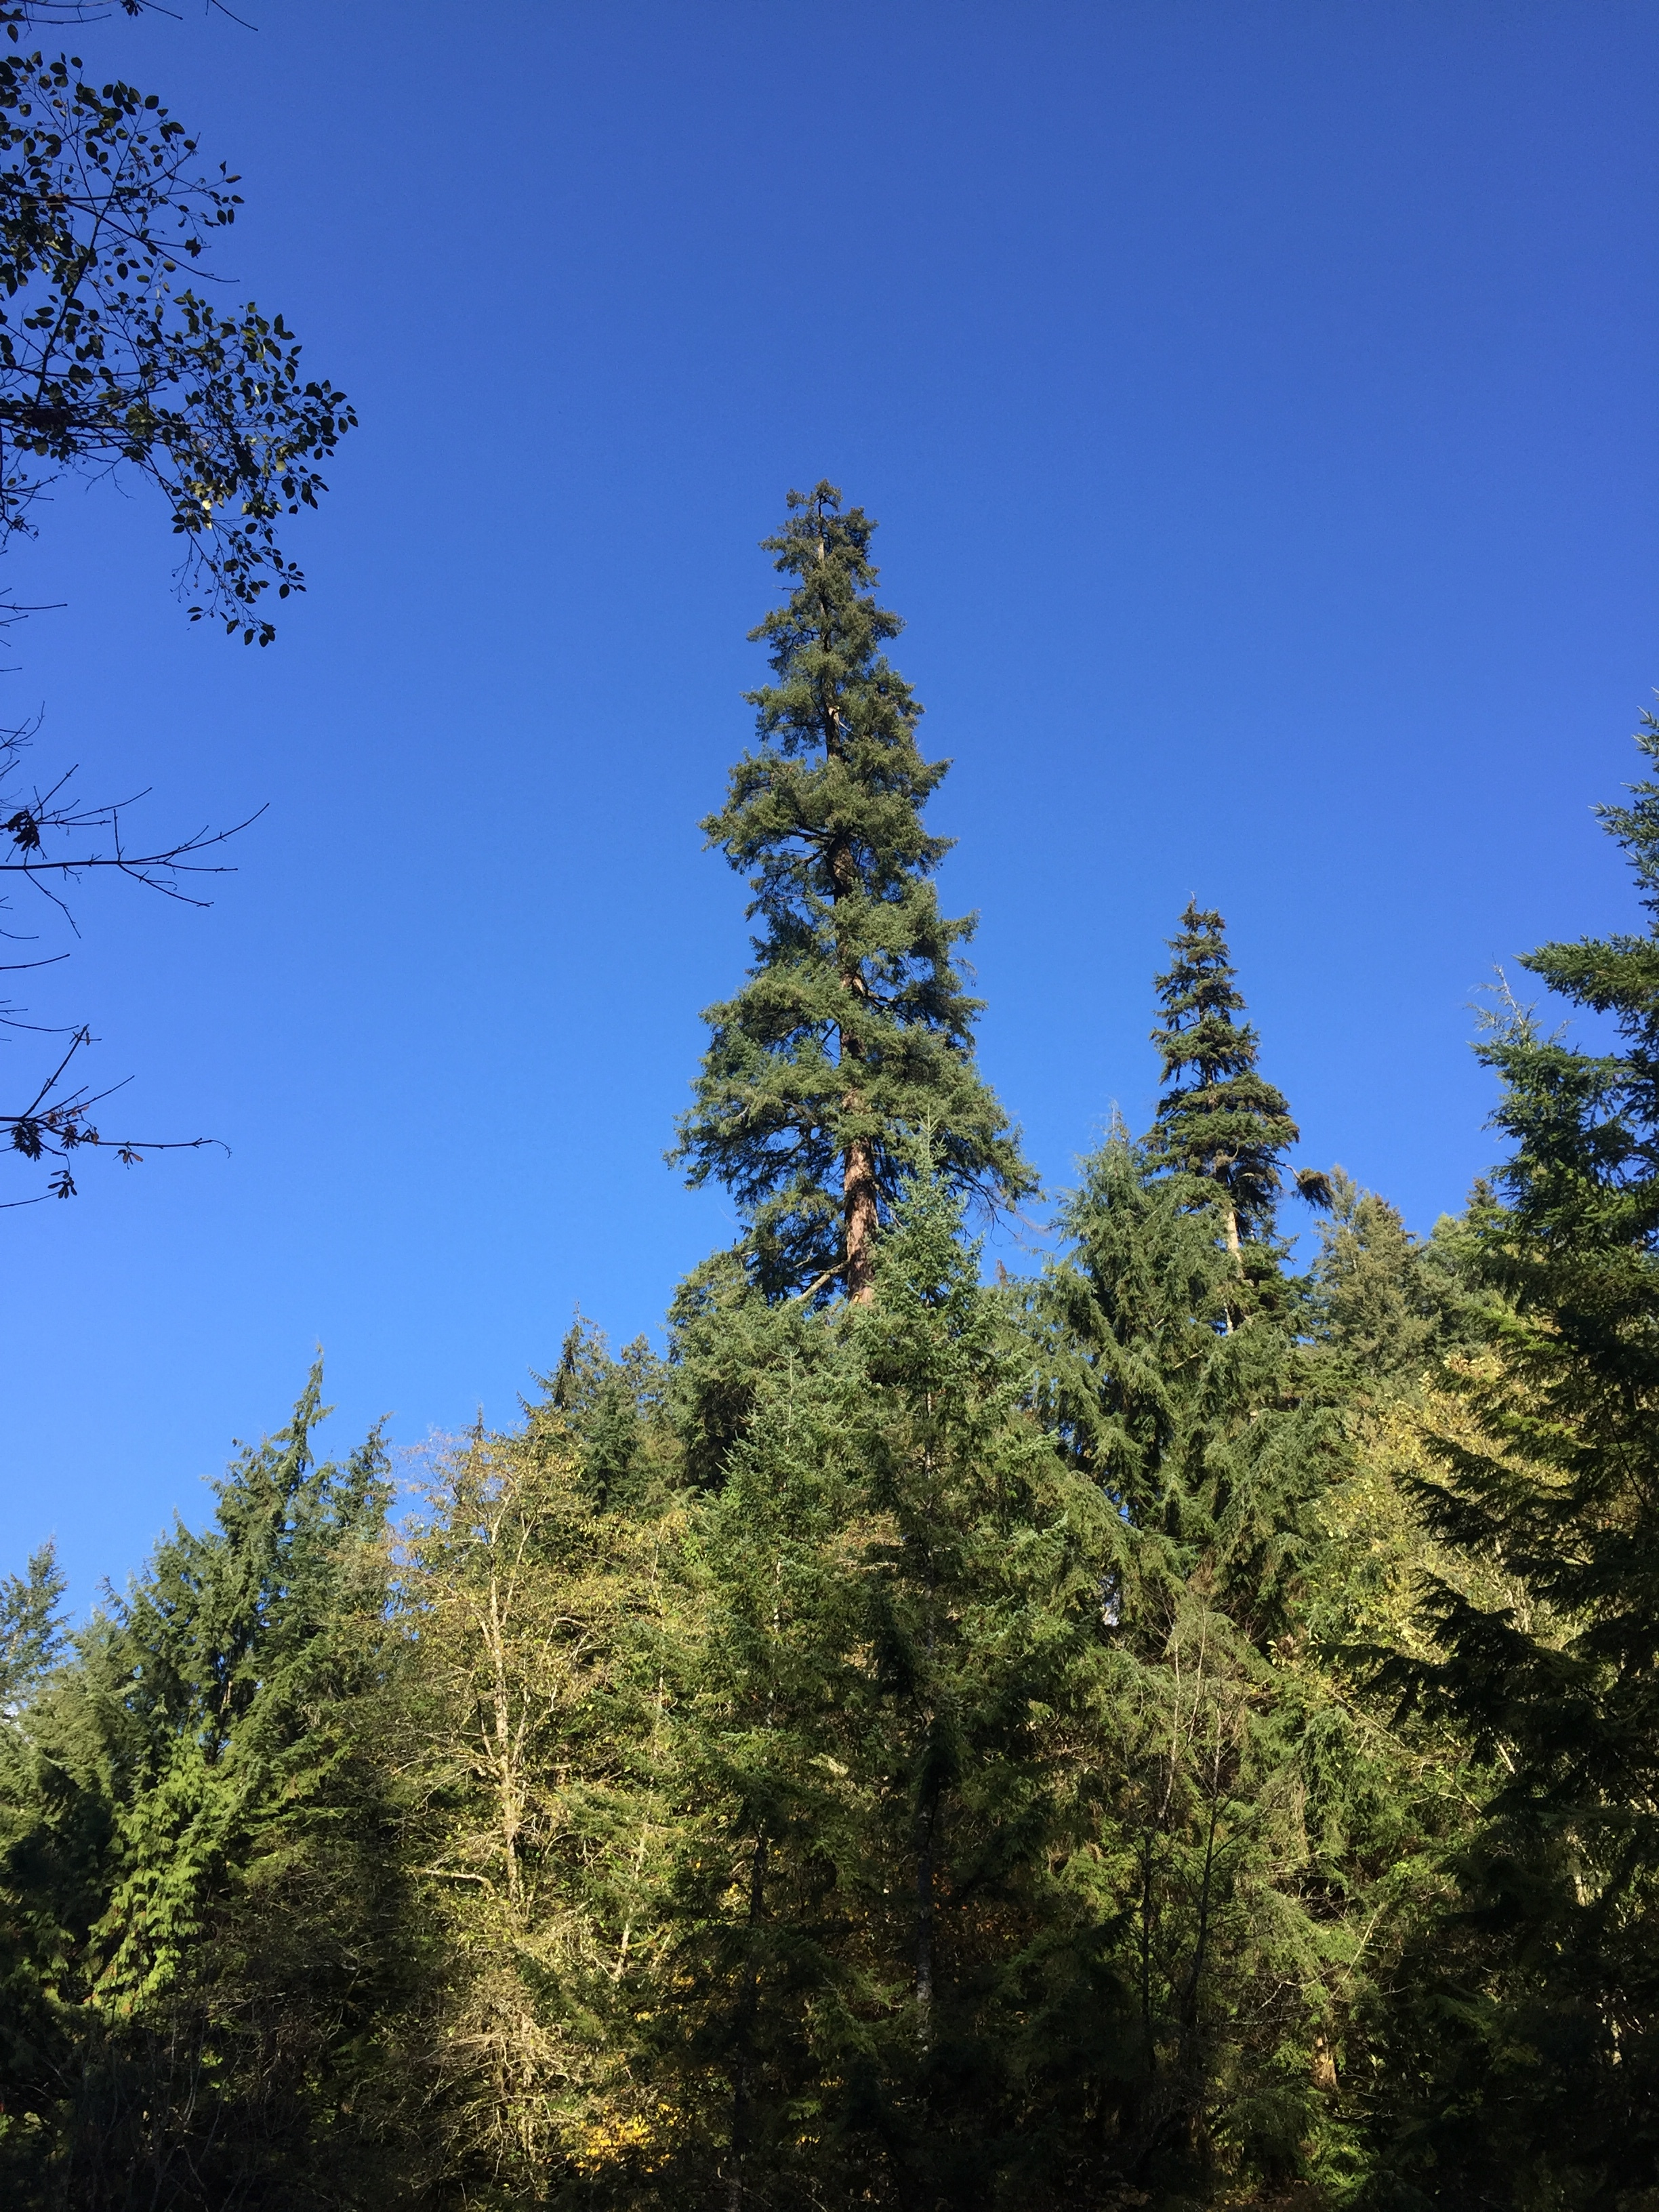 One of the tallest Douglas firs in the Vancouver area, towering over the other trees ringing the parking lot at the salmon hatchery.